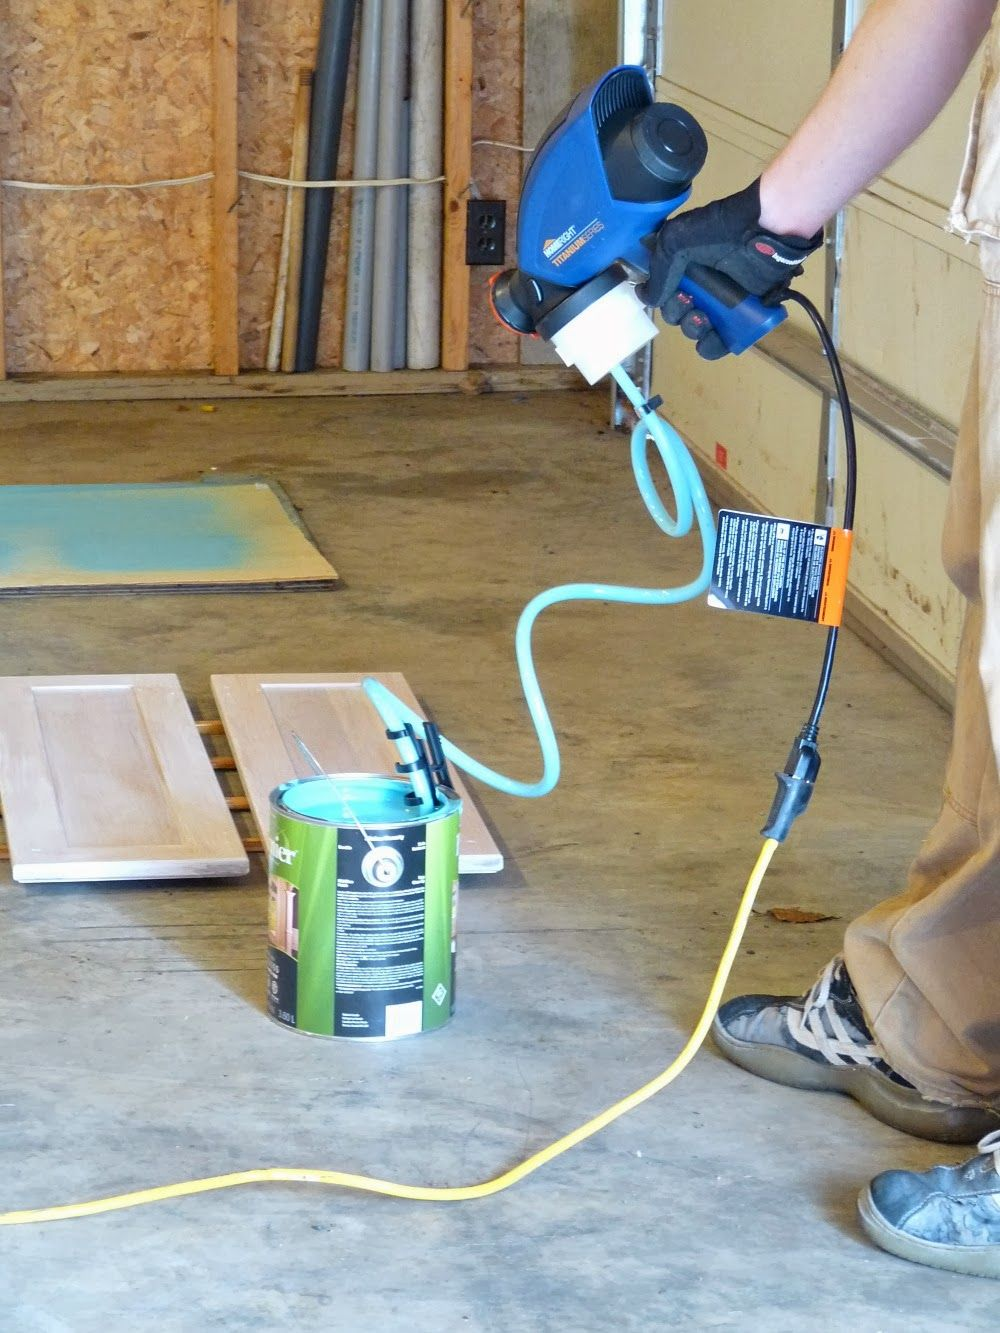 Airless paint sprayer  no compressor needed  Our home